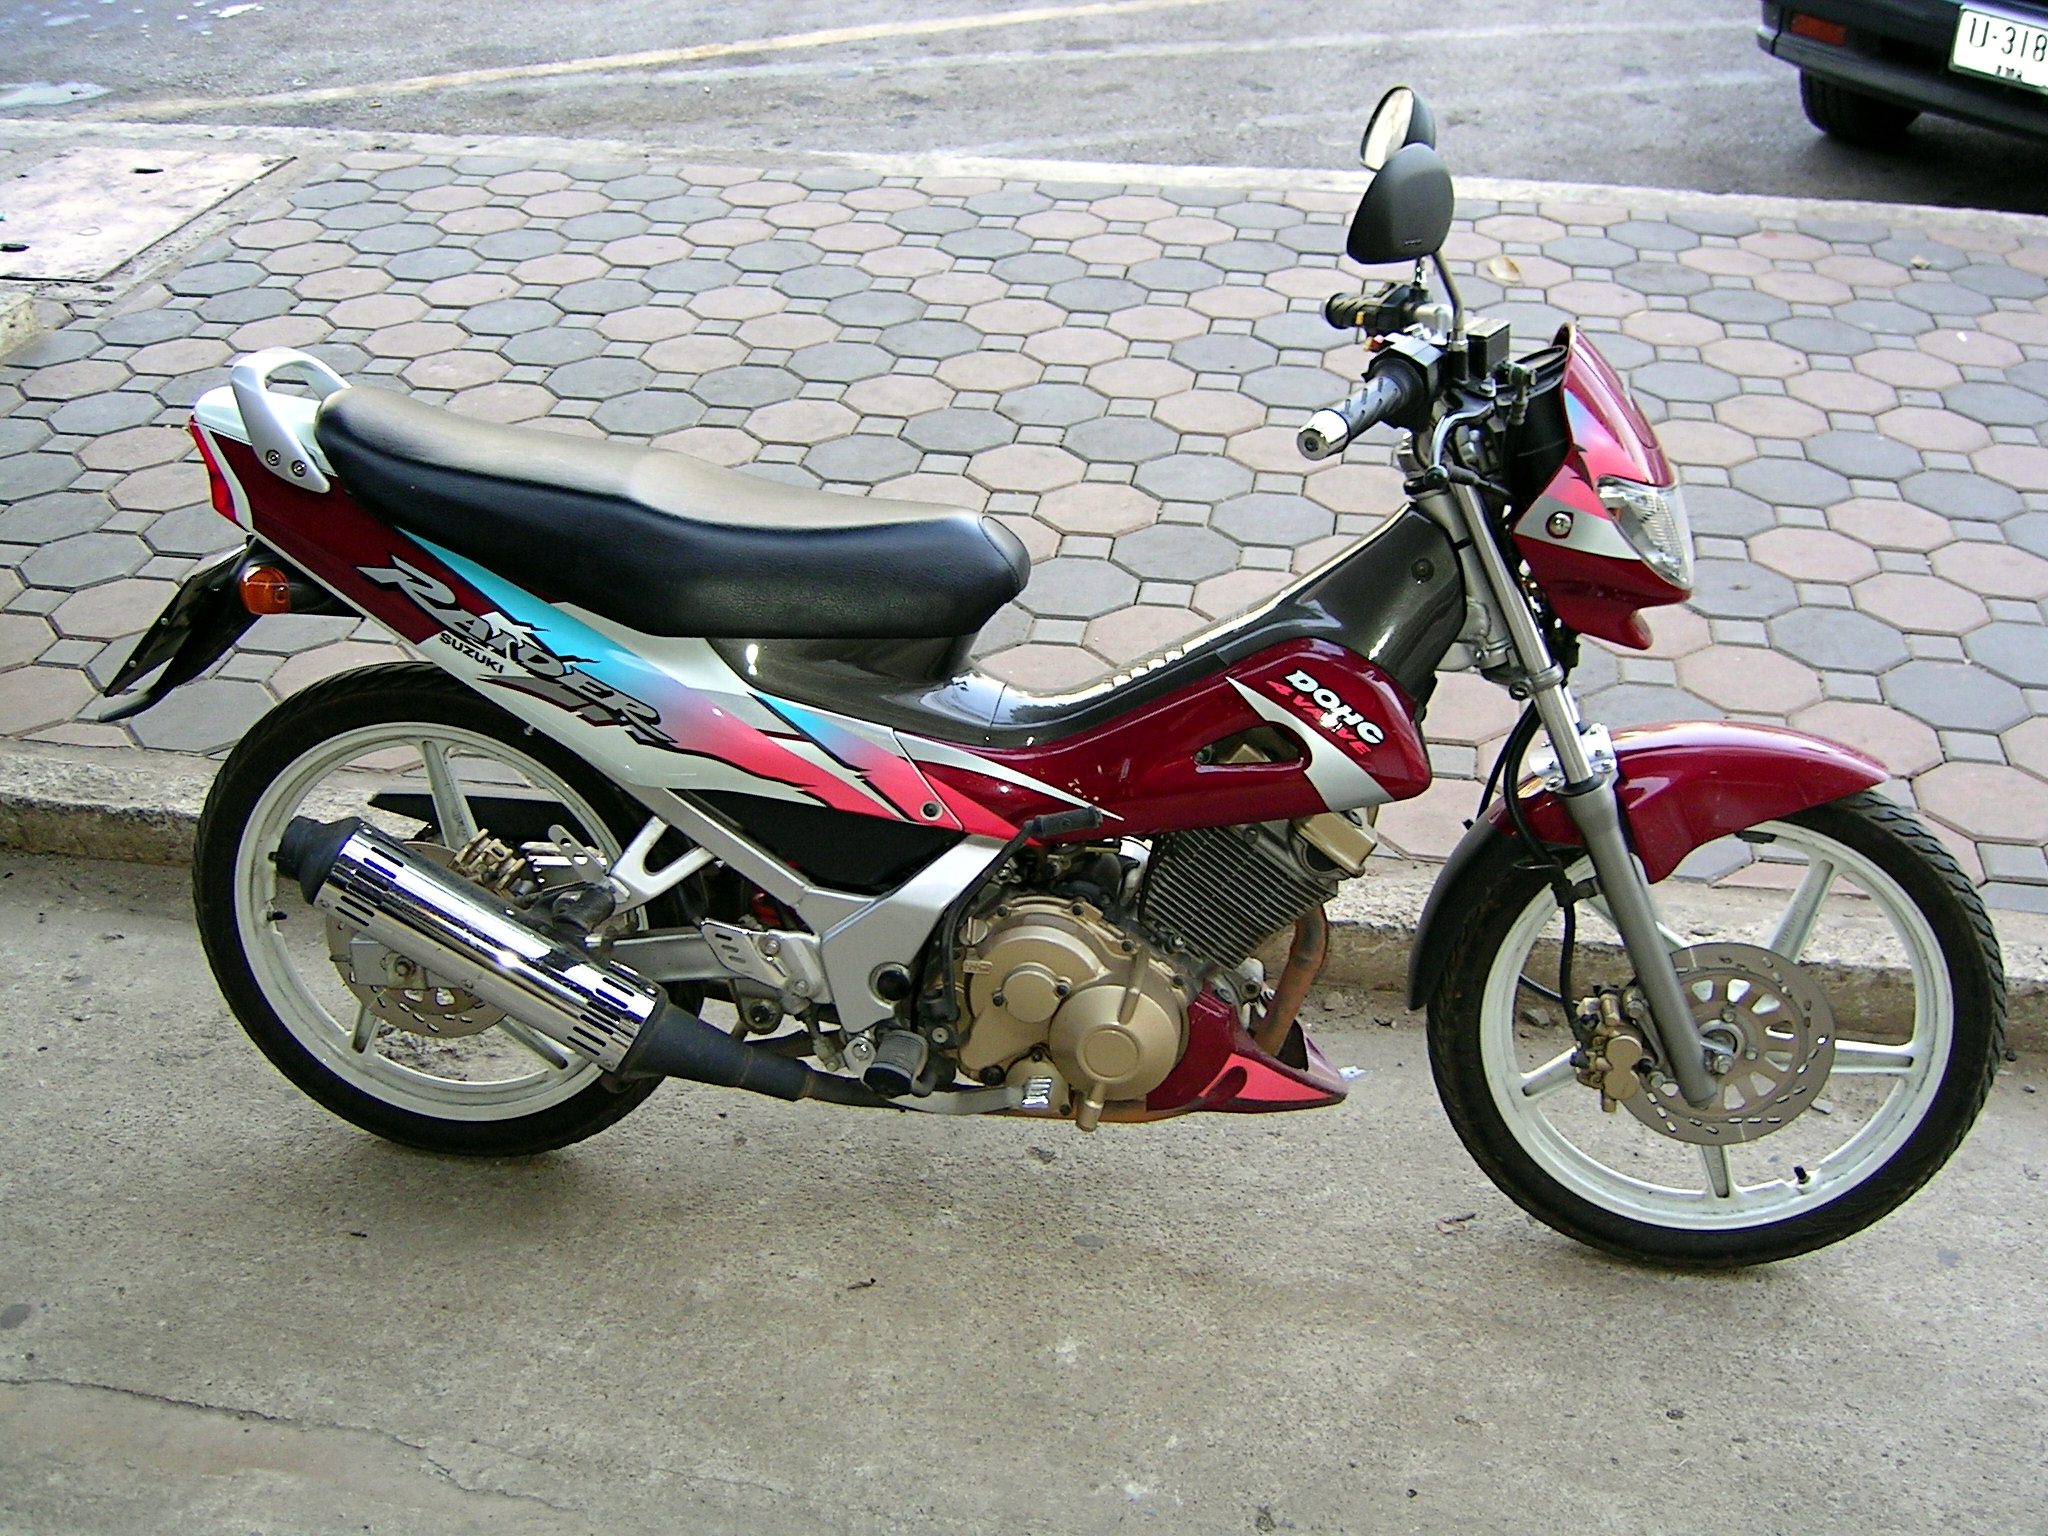 Description Suzuki Raider 150 Thailand.jpg